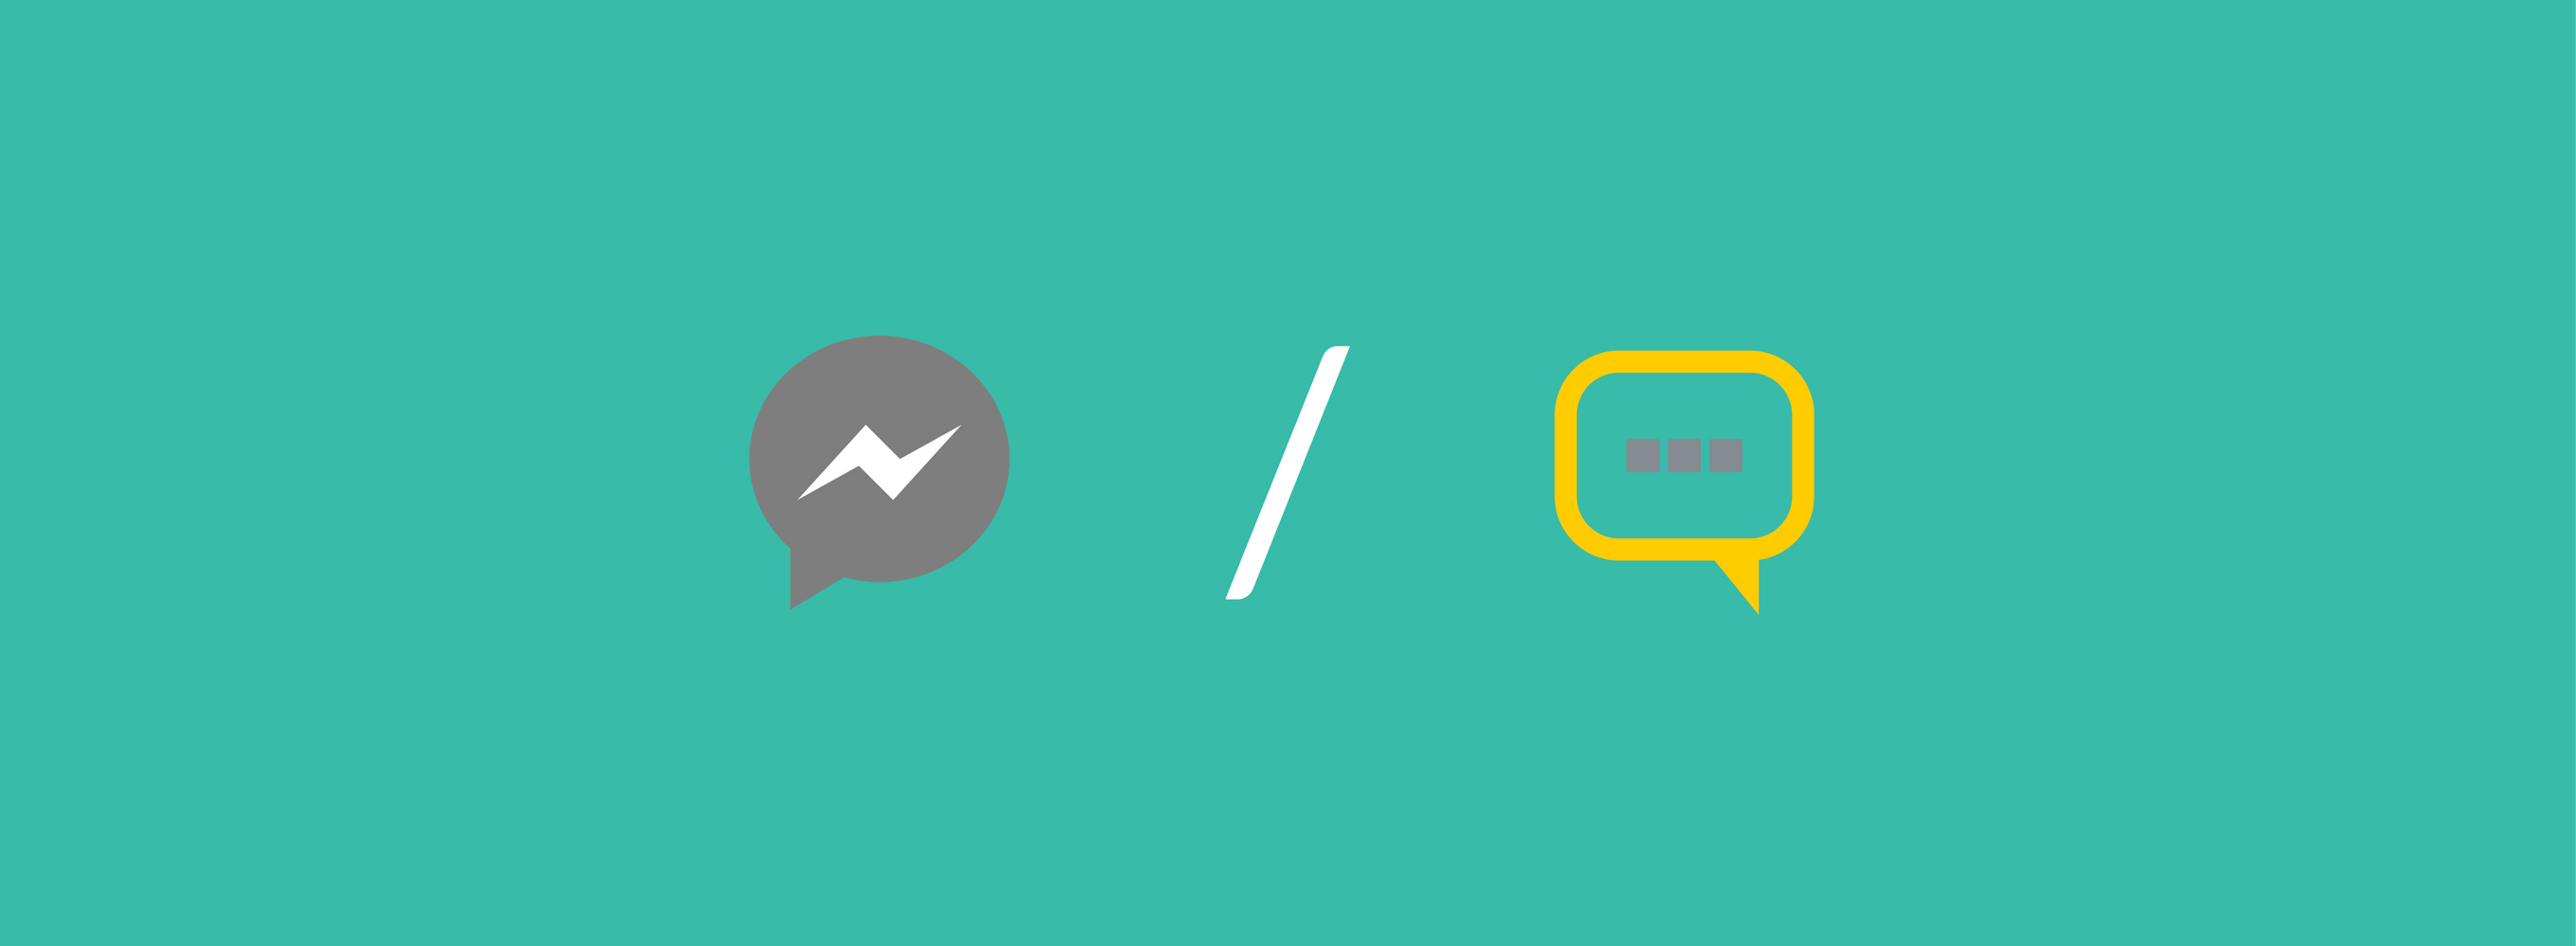 facebook-messenger-killed-live-chat-blog-header-image